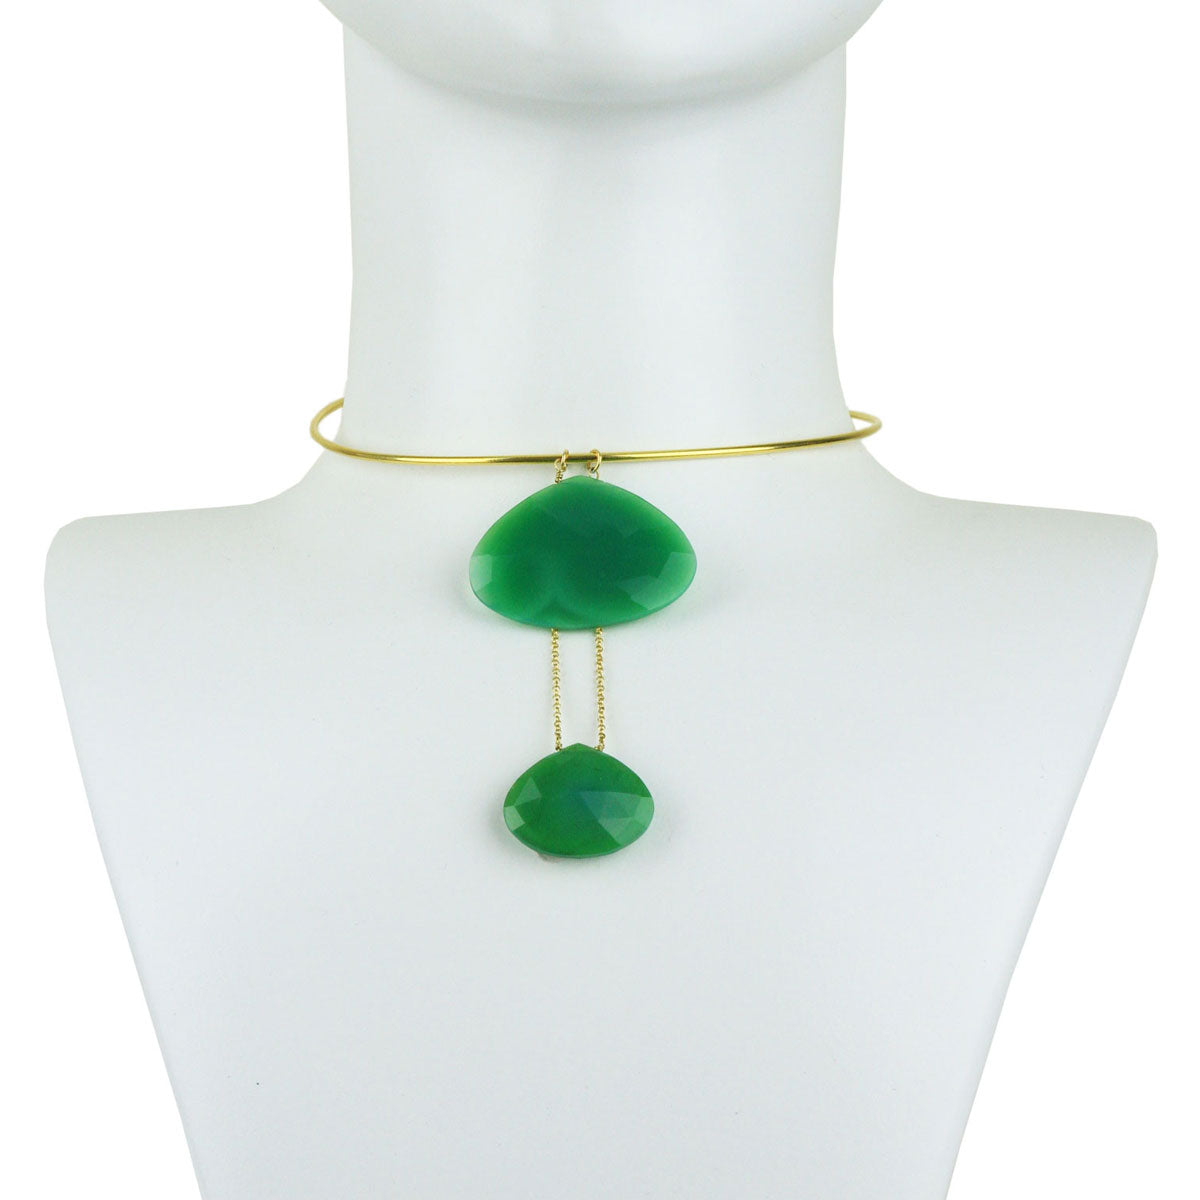 Selene Gold Plated 925 Sterling Silver Collar Necklace with Chrysoprase Drops